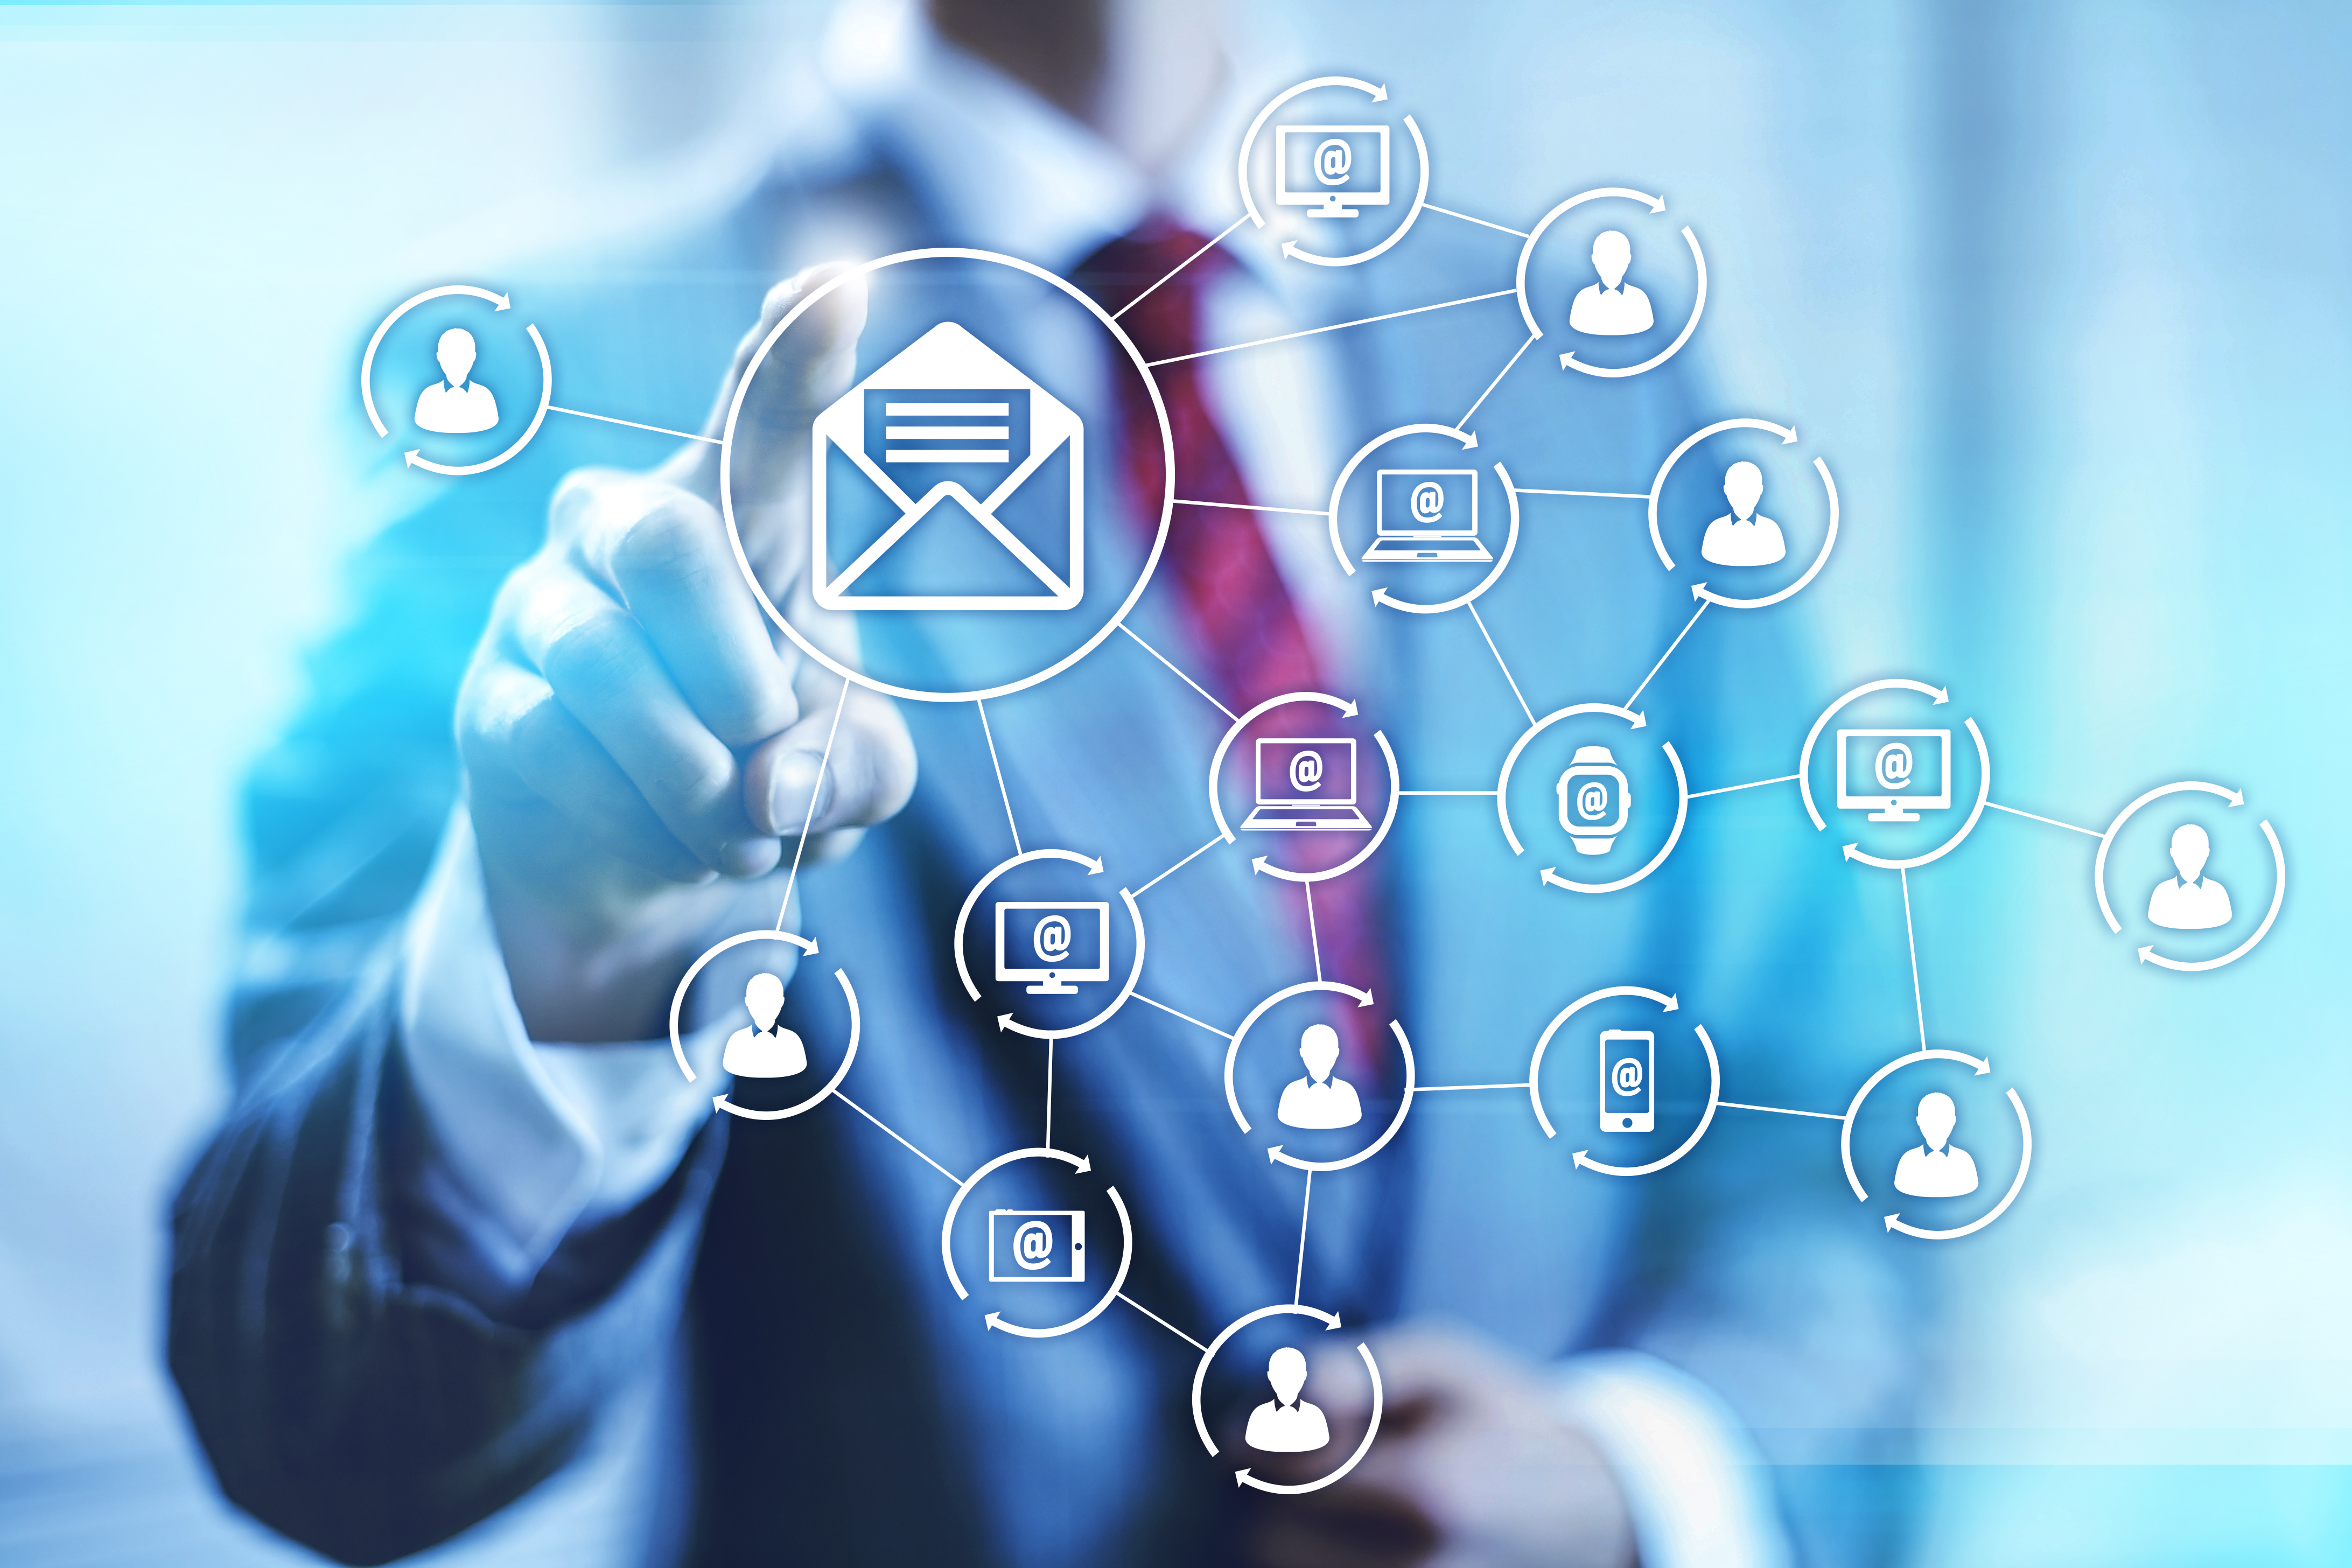 Email marketing business concept connectivity illustration